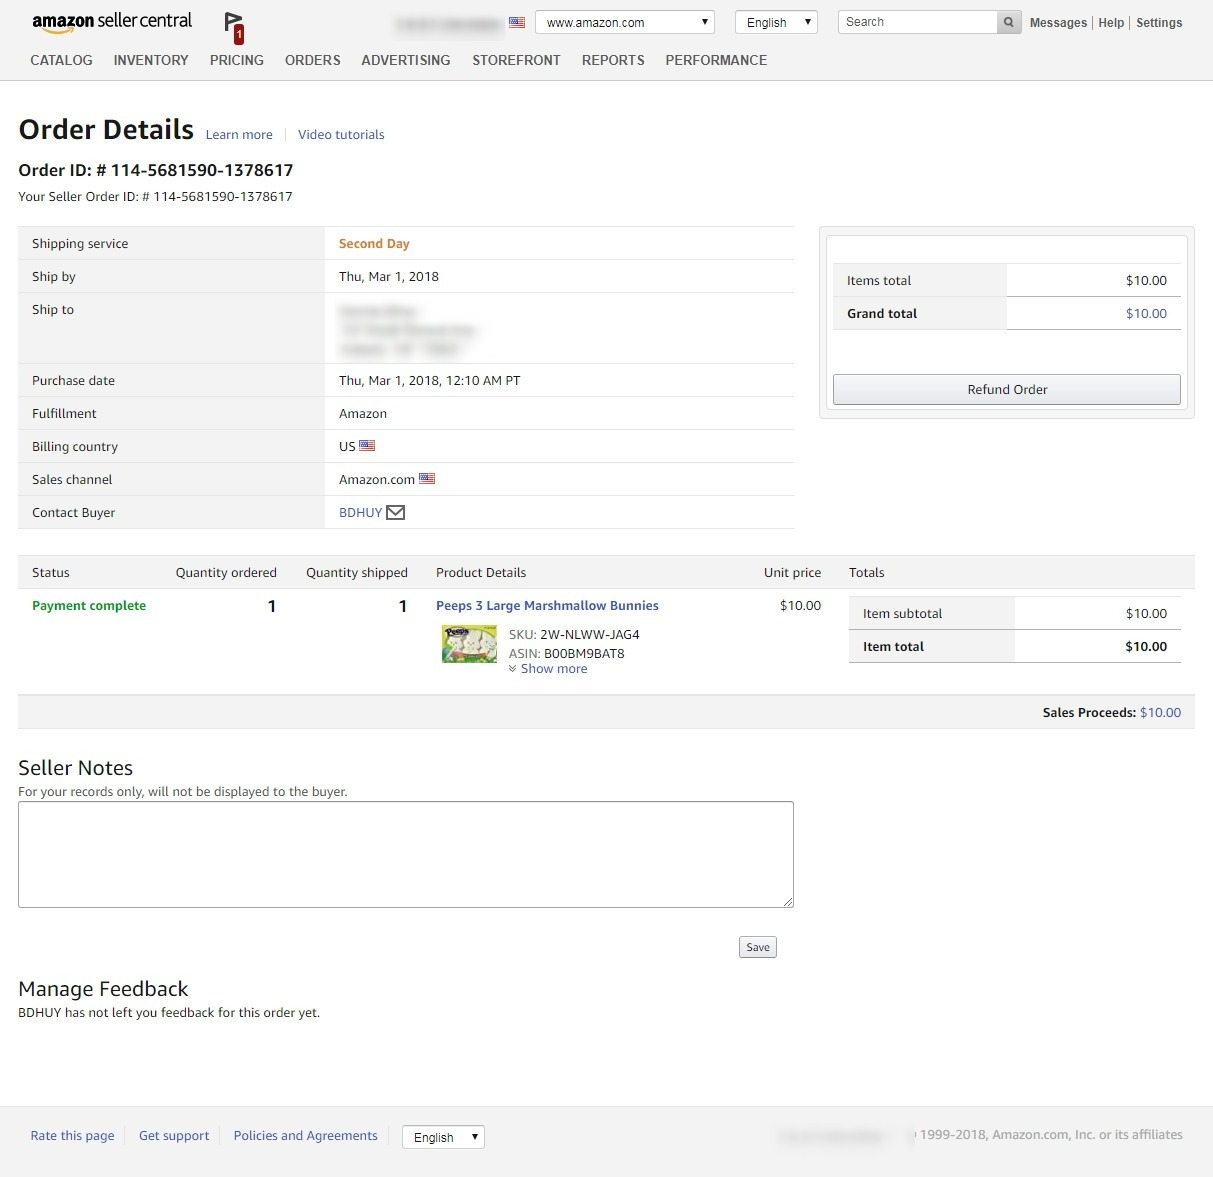 AMAZON SELLER CENTRAL INVOICES